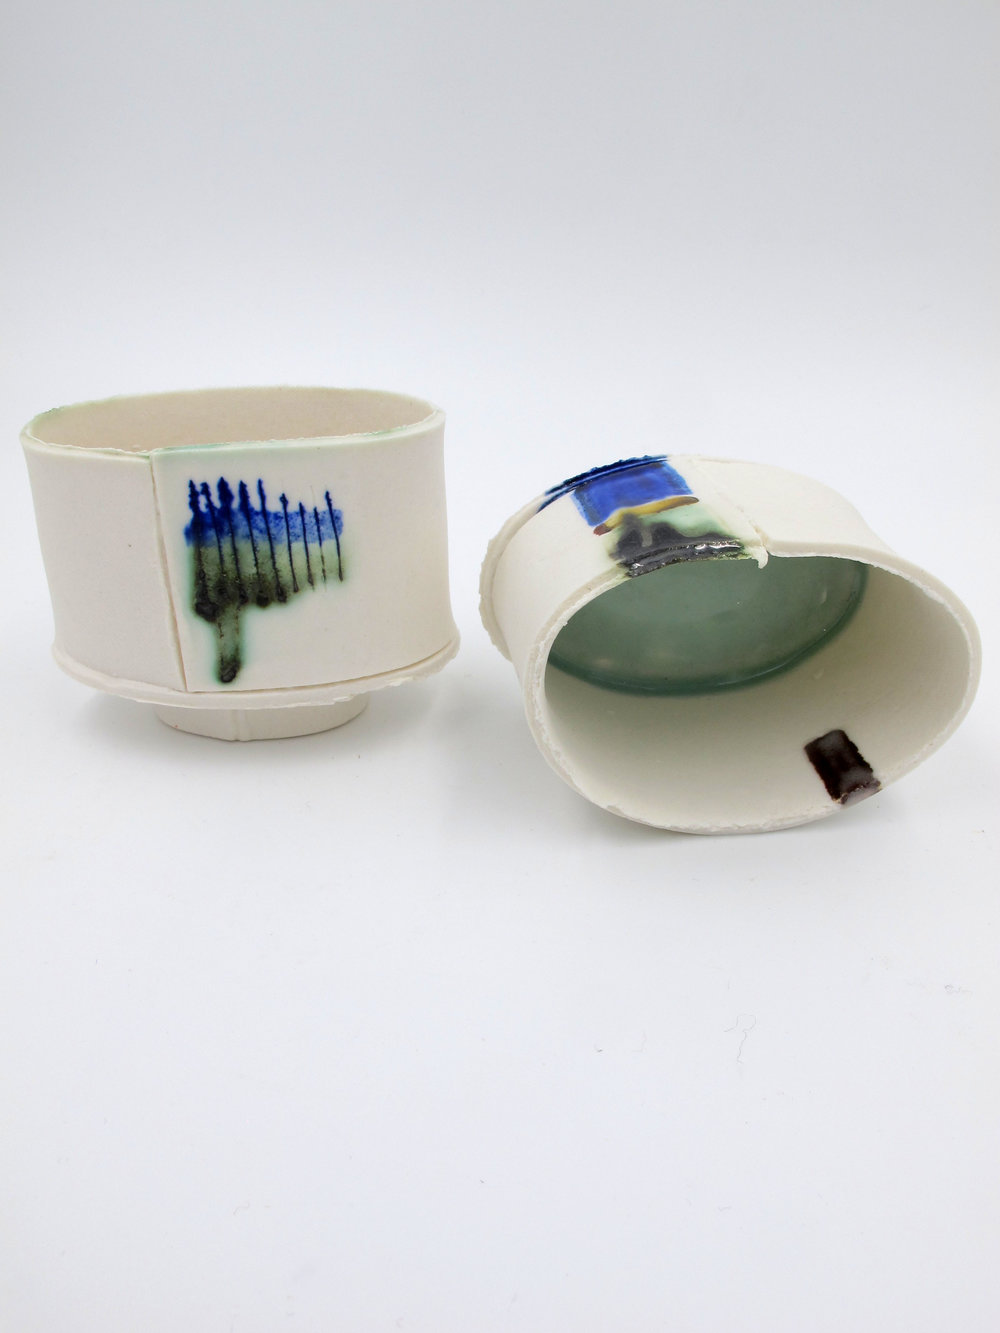 Porcelain tea vessels from Jane Prichard